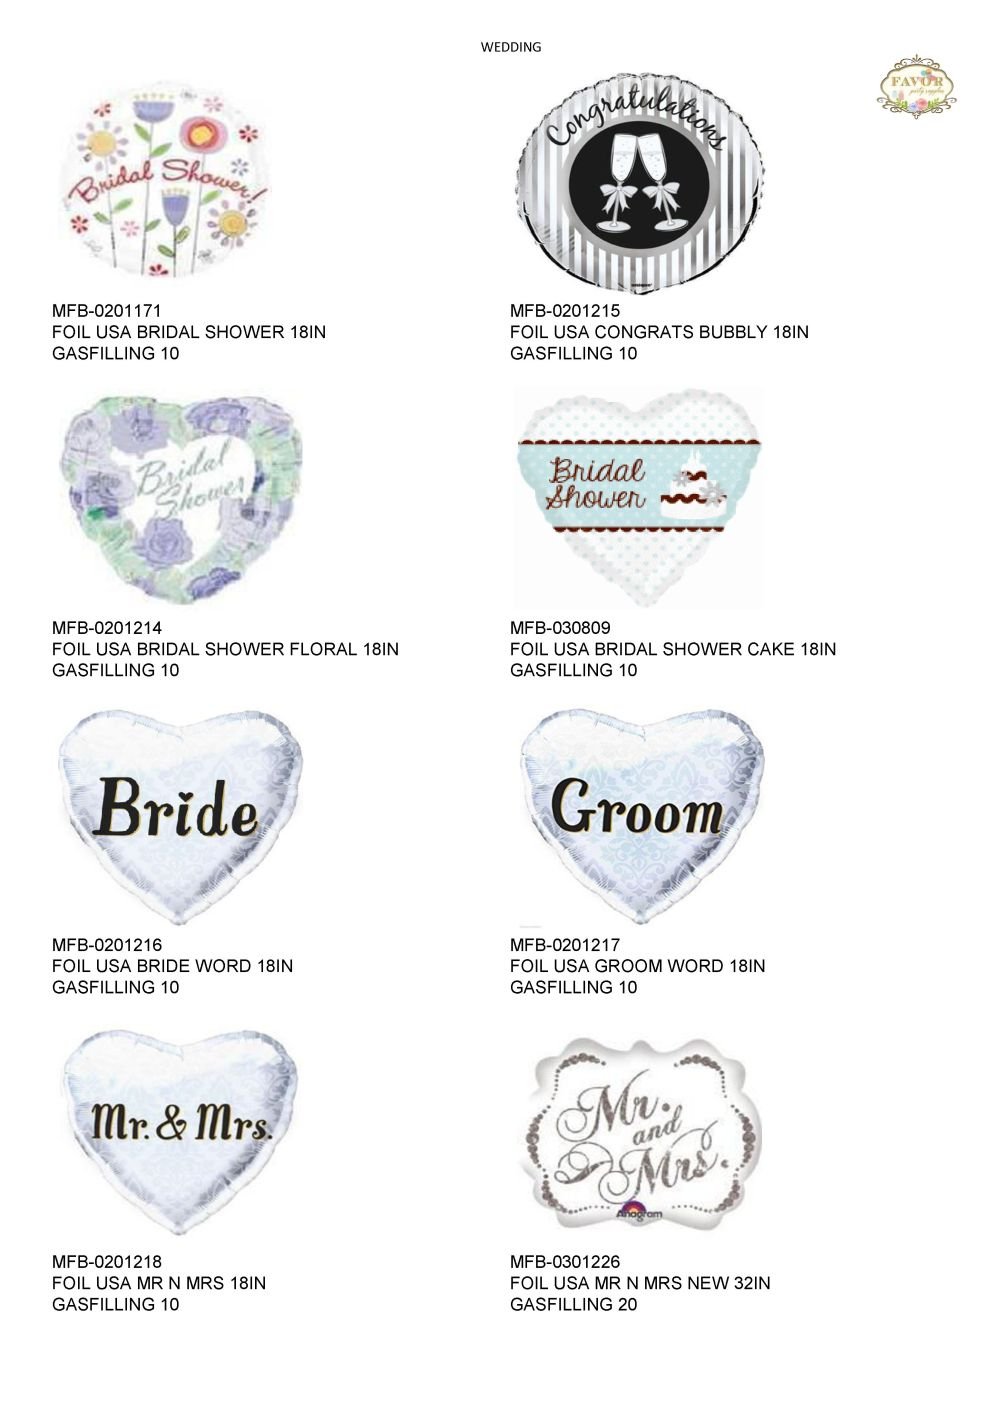 katalog-wedding-bridal-shower_2